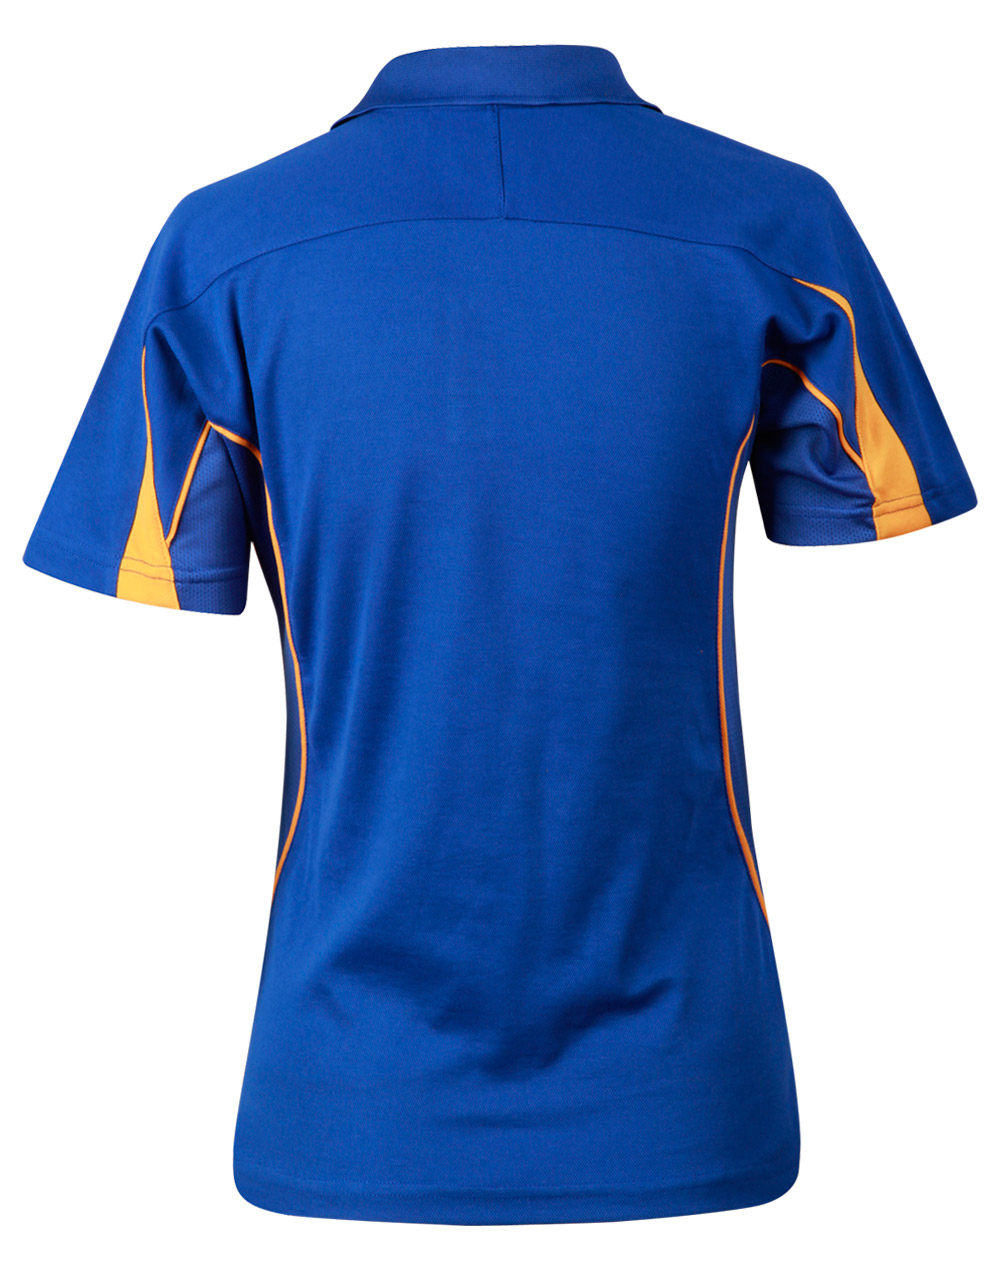 https://s3-ap-southeast-1.amazonaws.com/ws-imgs/POLOSHIRTS/PS54_RoyalGold_Back.jpg